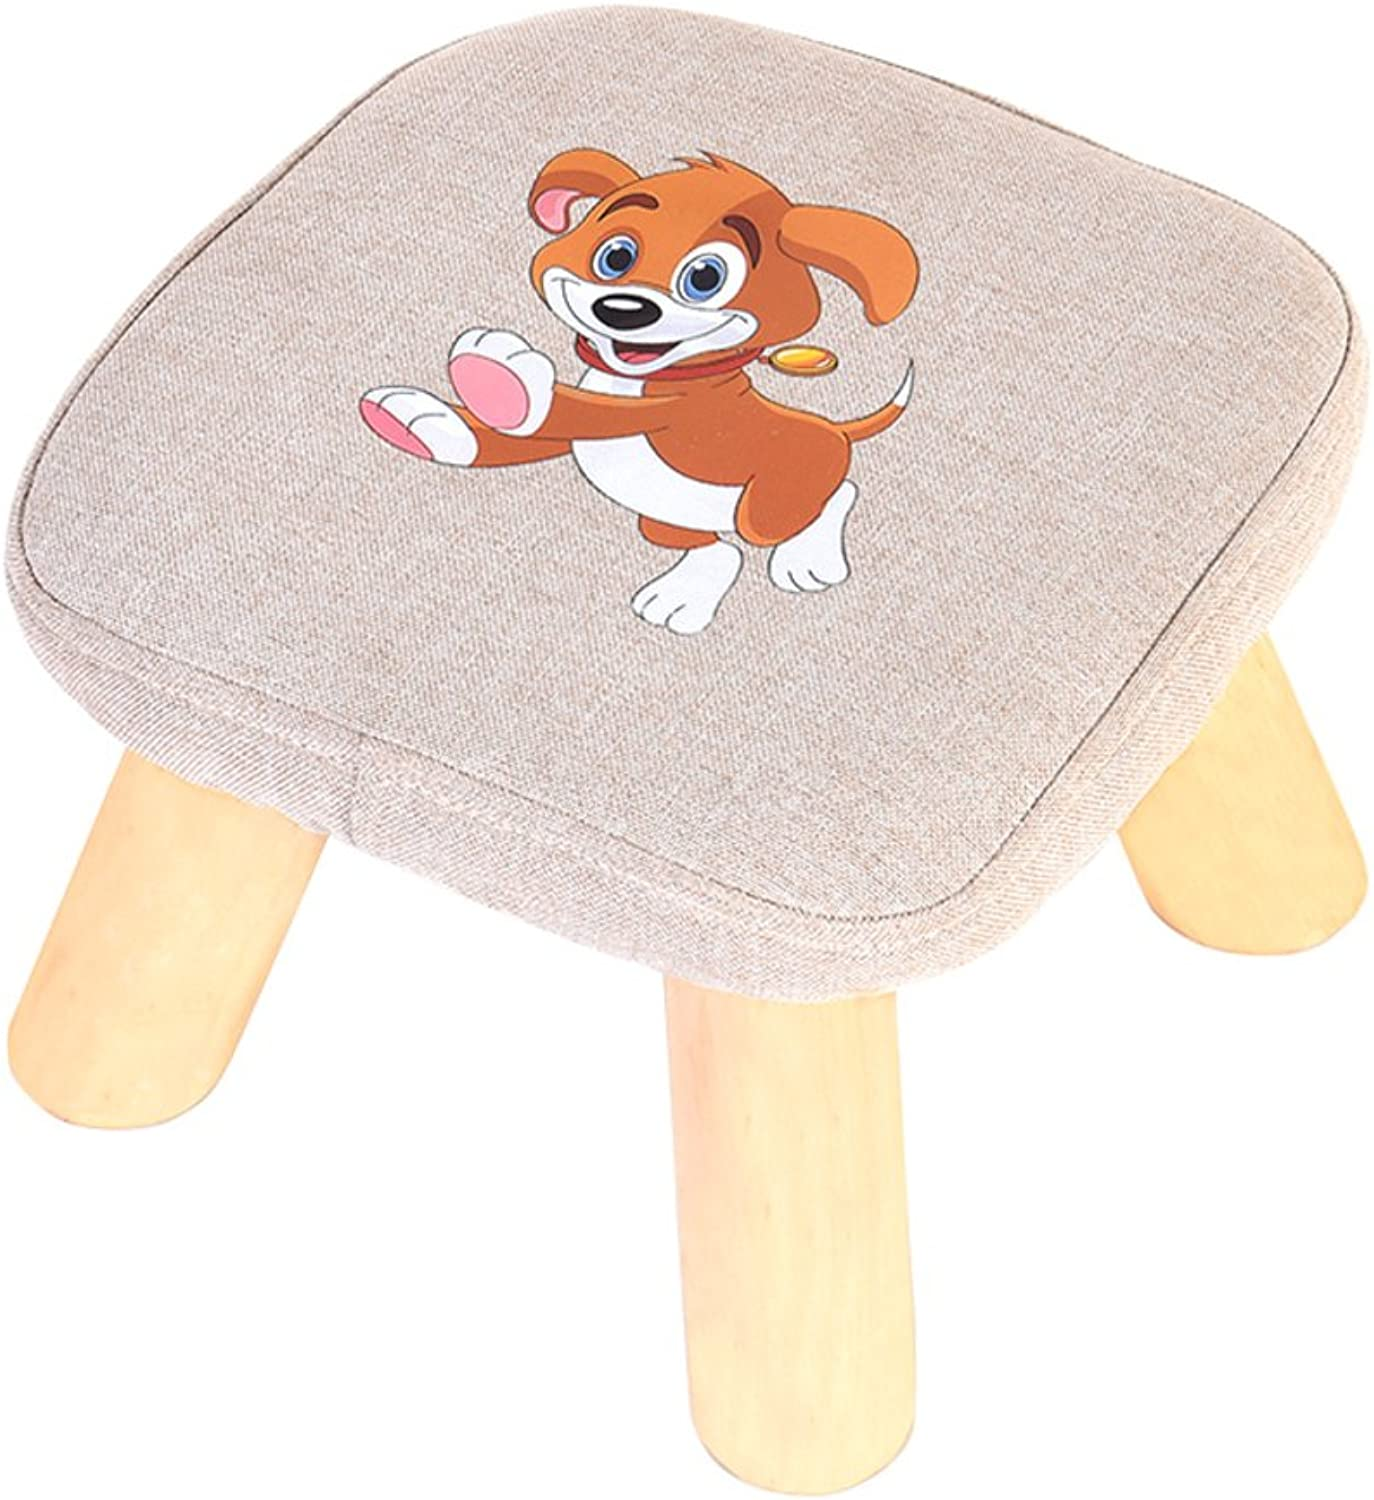 Household use Small Stool Solid Wood Fashion Creative Round Stool Living Room Fabrics Sofa Stool Changing shoes Stool-L